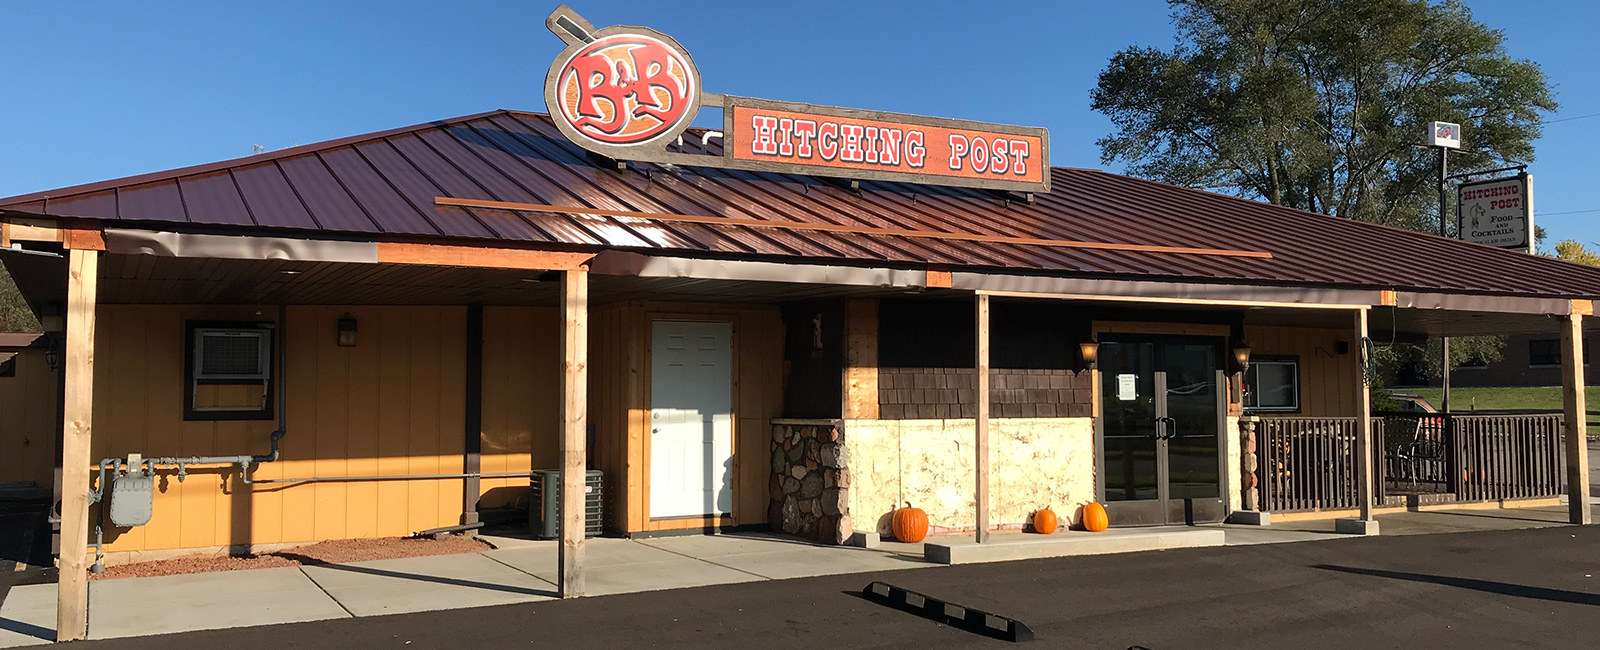 B&B Hitching Post Restaurant/Catering